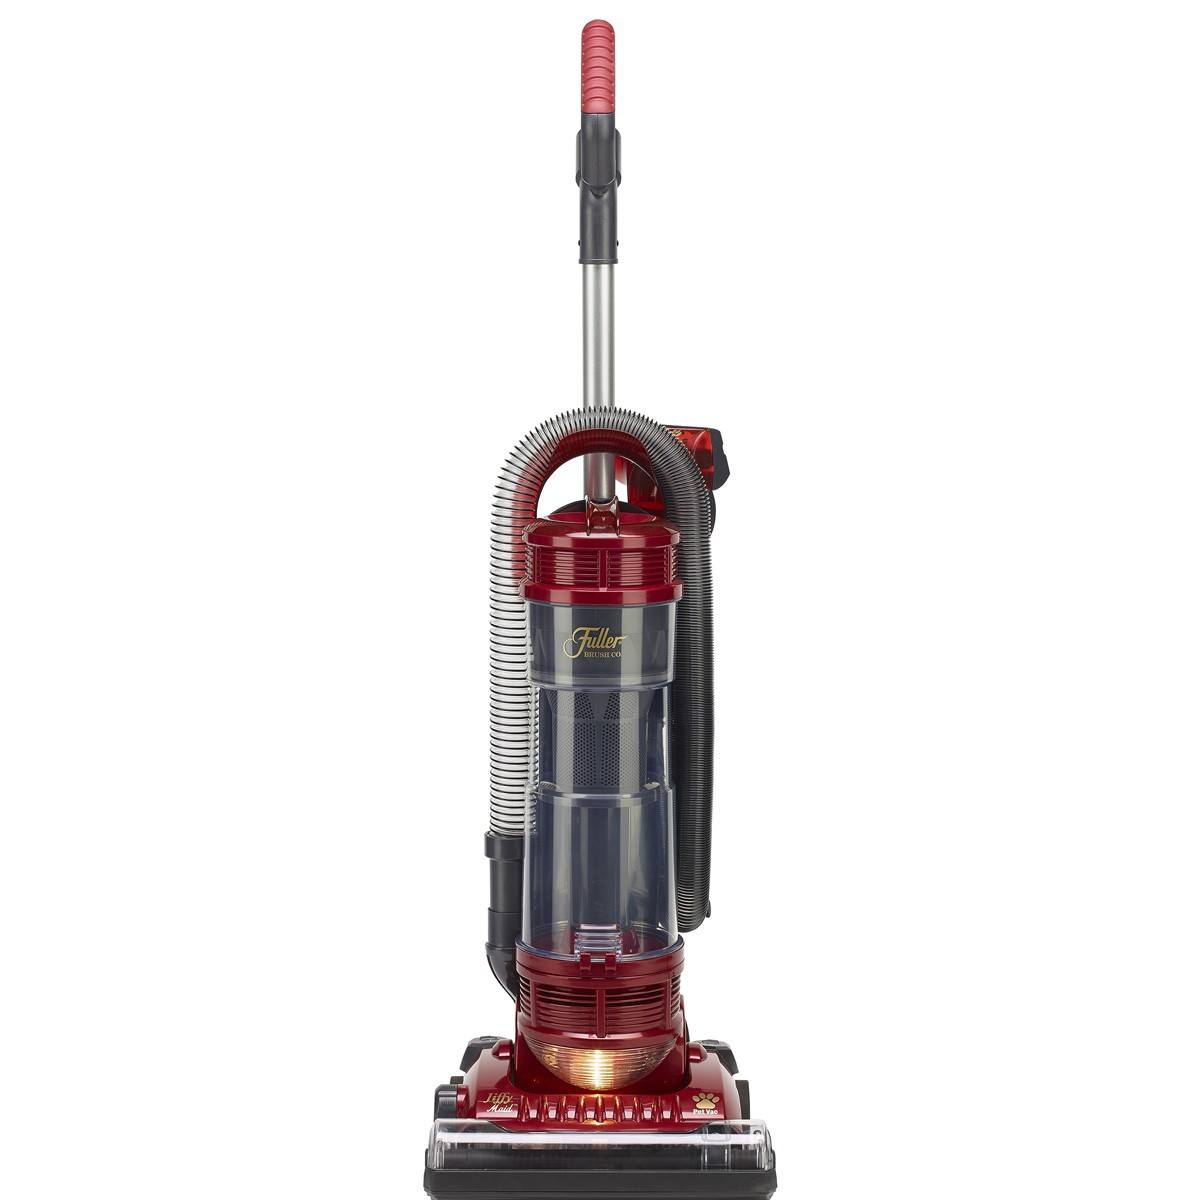 Fuller Brush Jiffy Maid Bagless Upright Pet Vacuum Cleaner